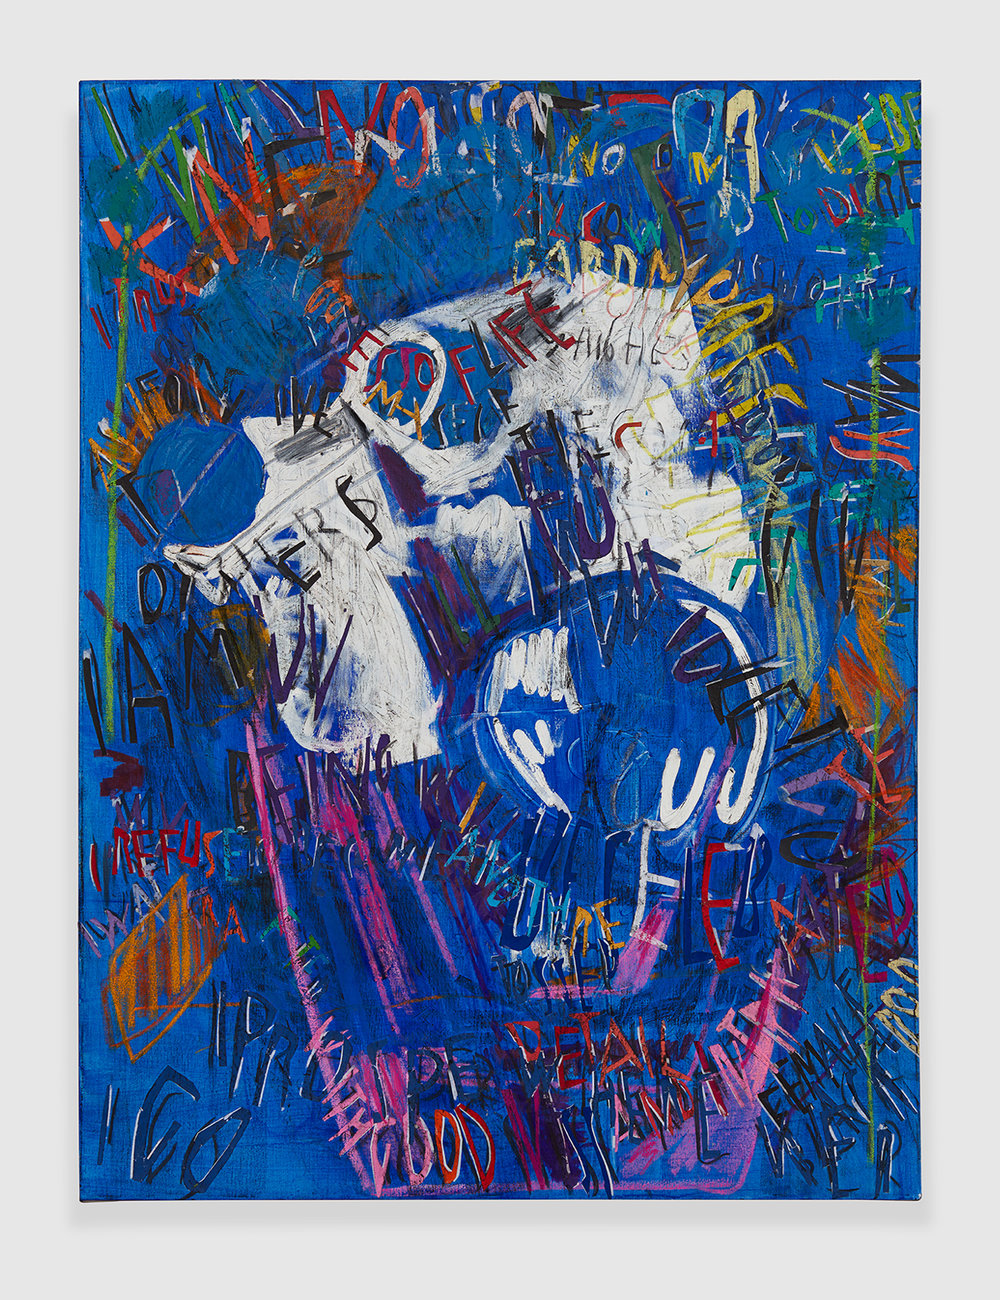 RGB Affirmations (Blue) , 2018 acrylic, marker, oil stick, oil, charcoal and paper collage on linen 48 x 36 in - 121,9 x 91,4 cm